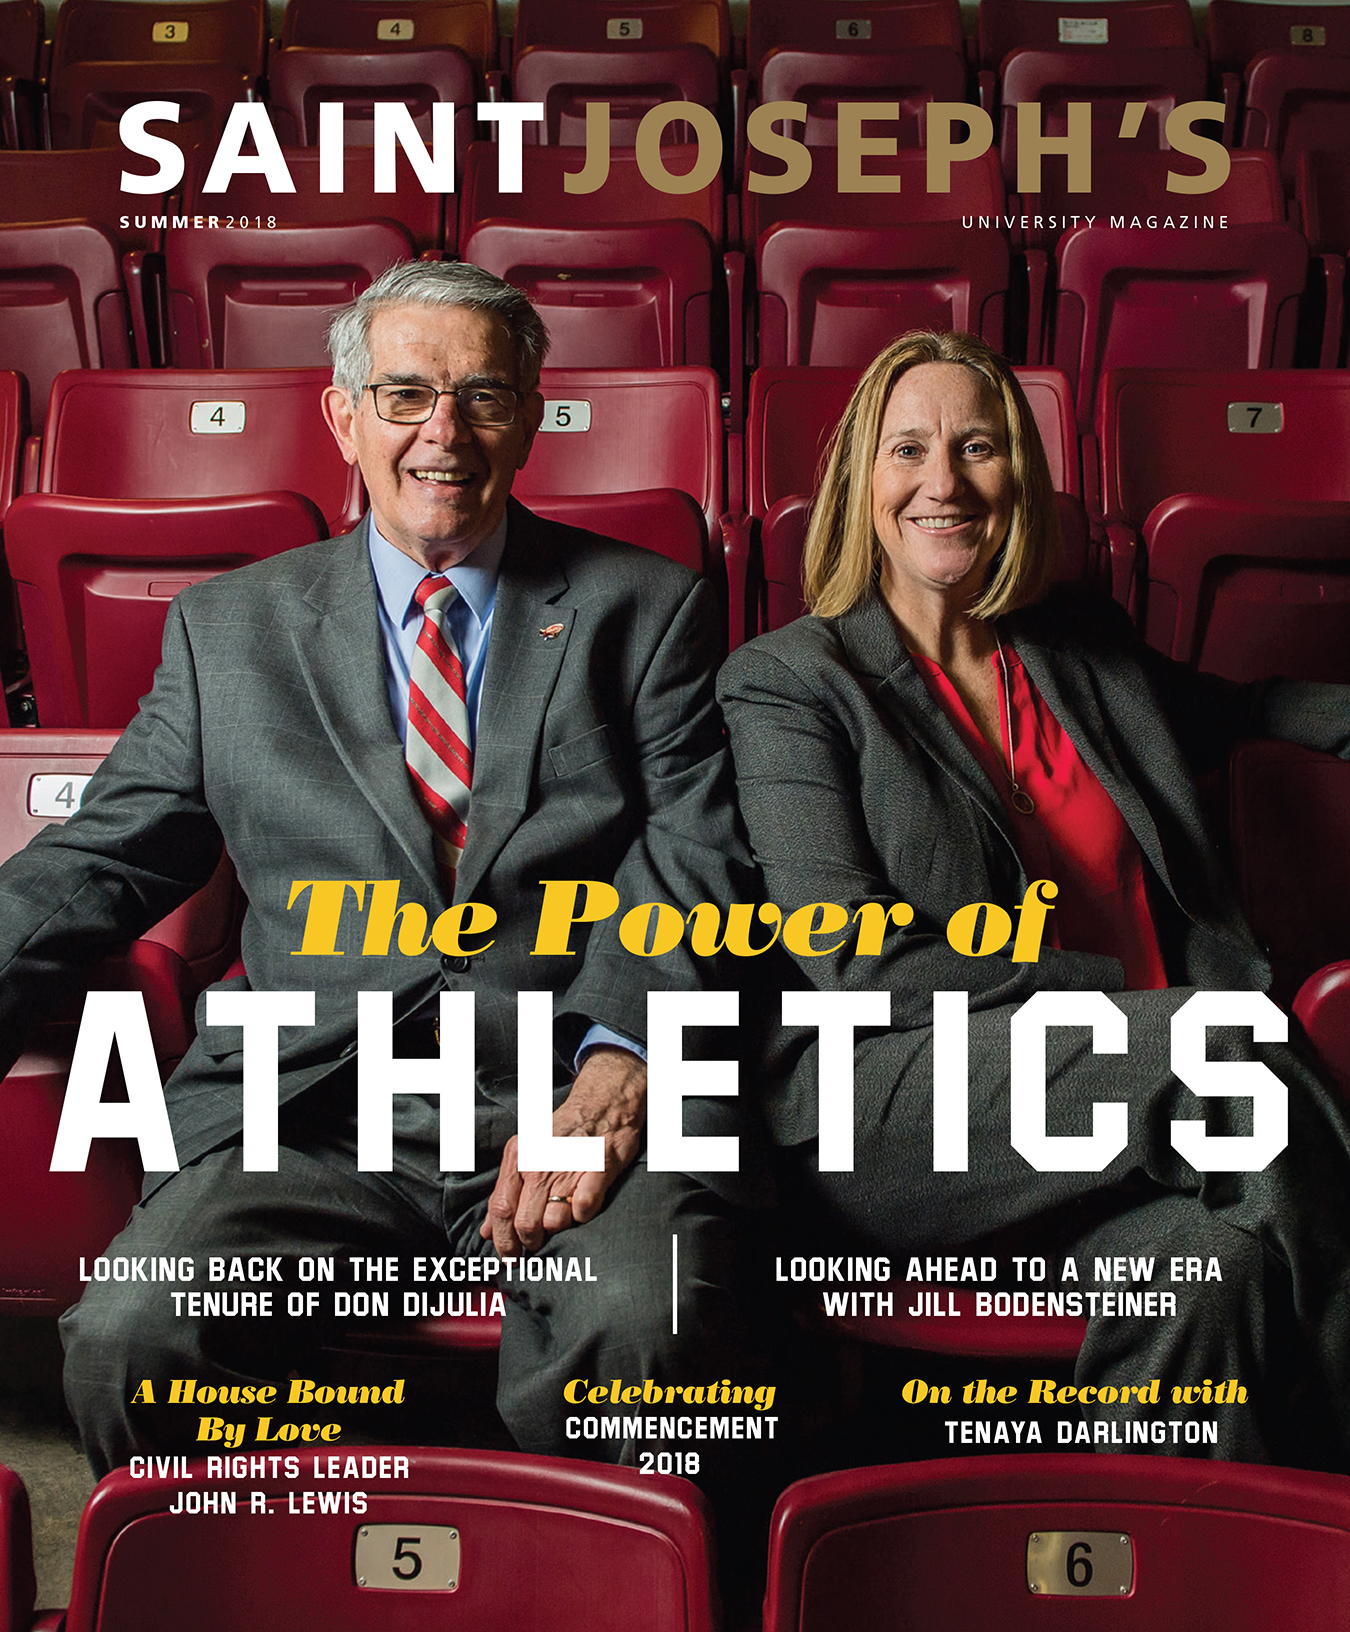 SJU Summer 2018 magazine cover with Don DiJulia and Jill Bodensteiner in stadium seats